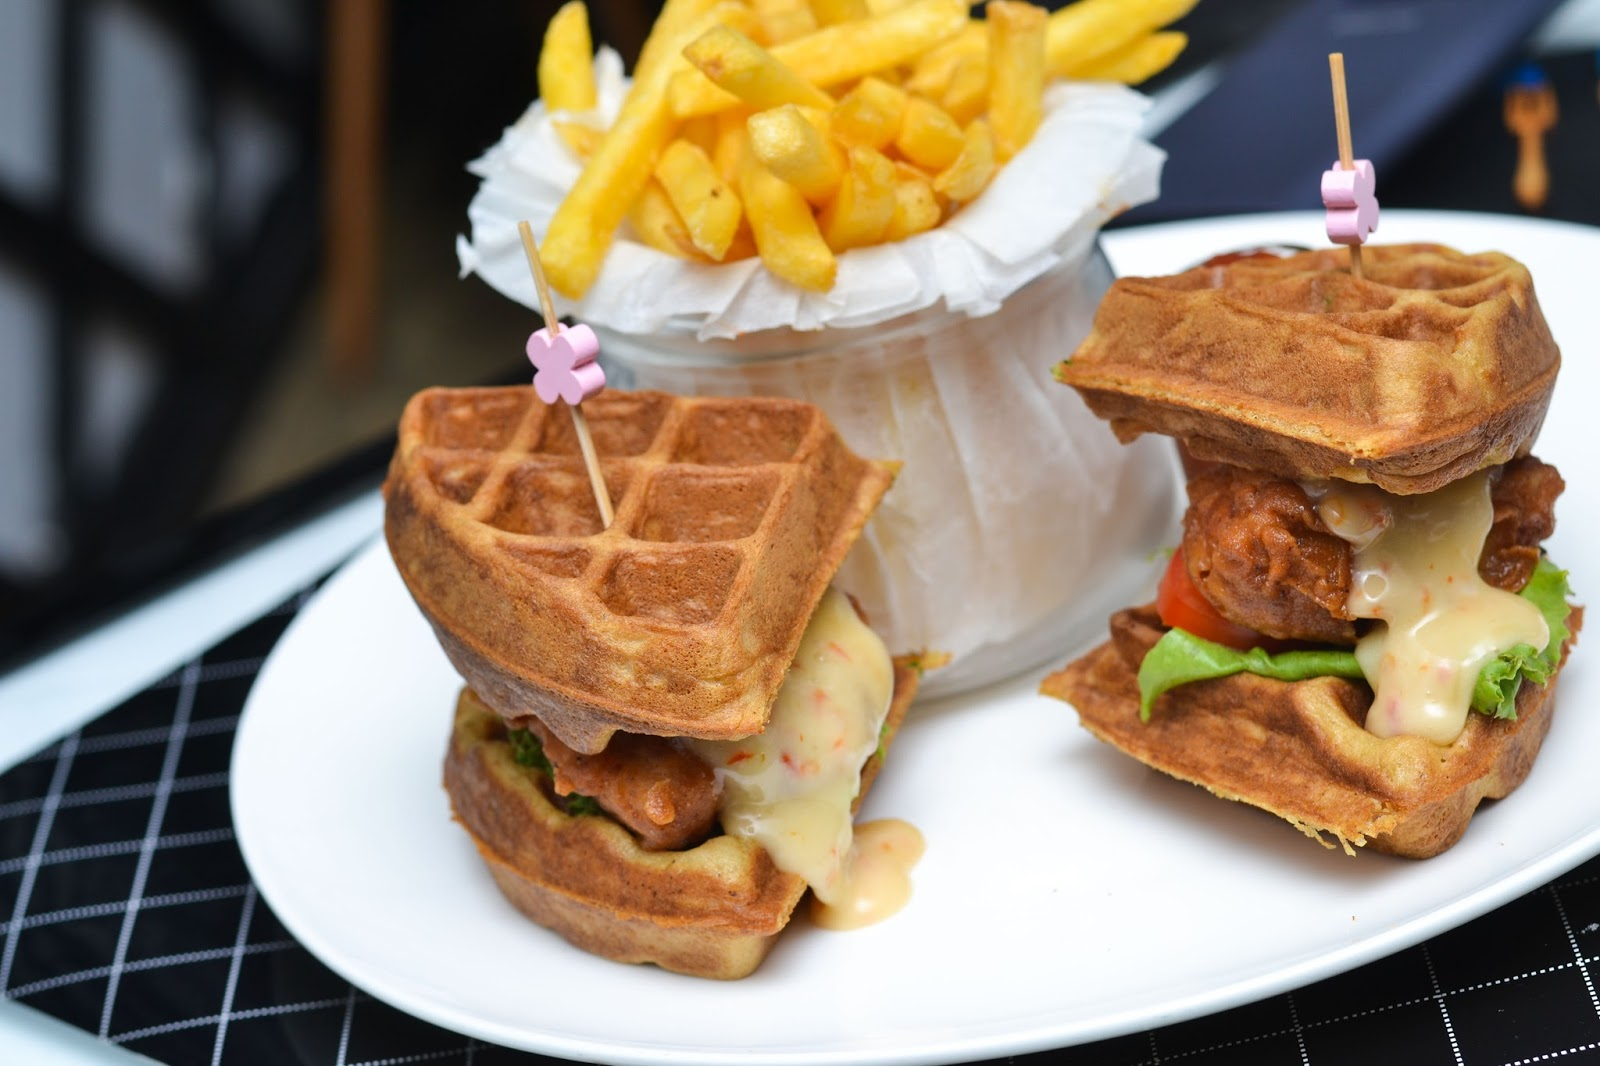 Chicken in Waffle with Chips